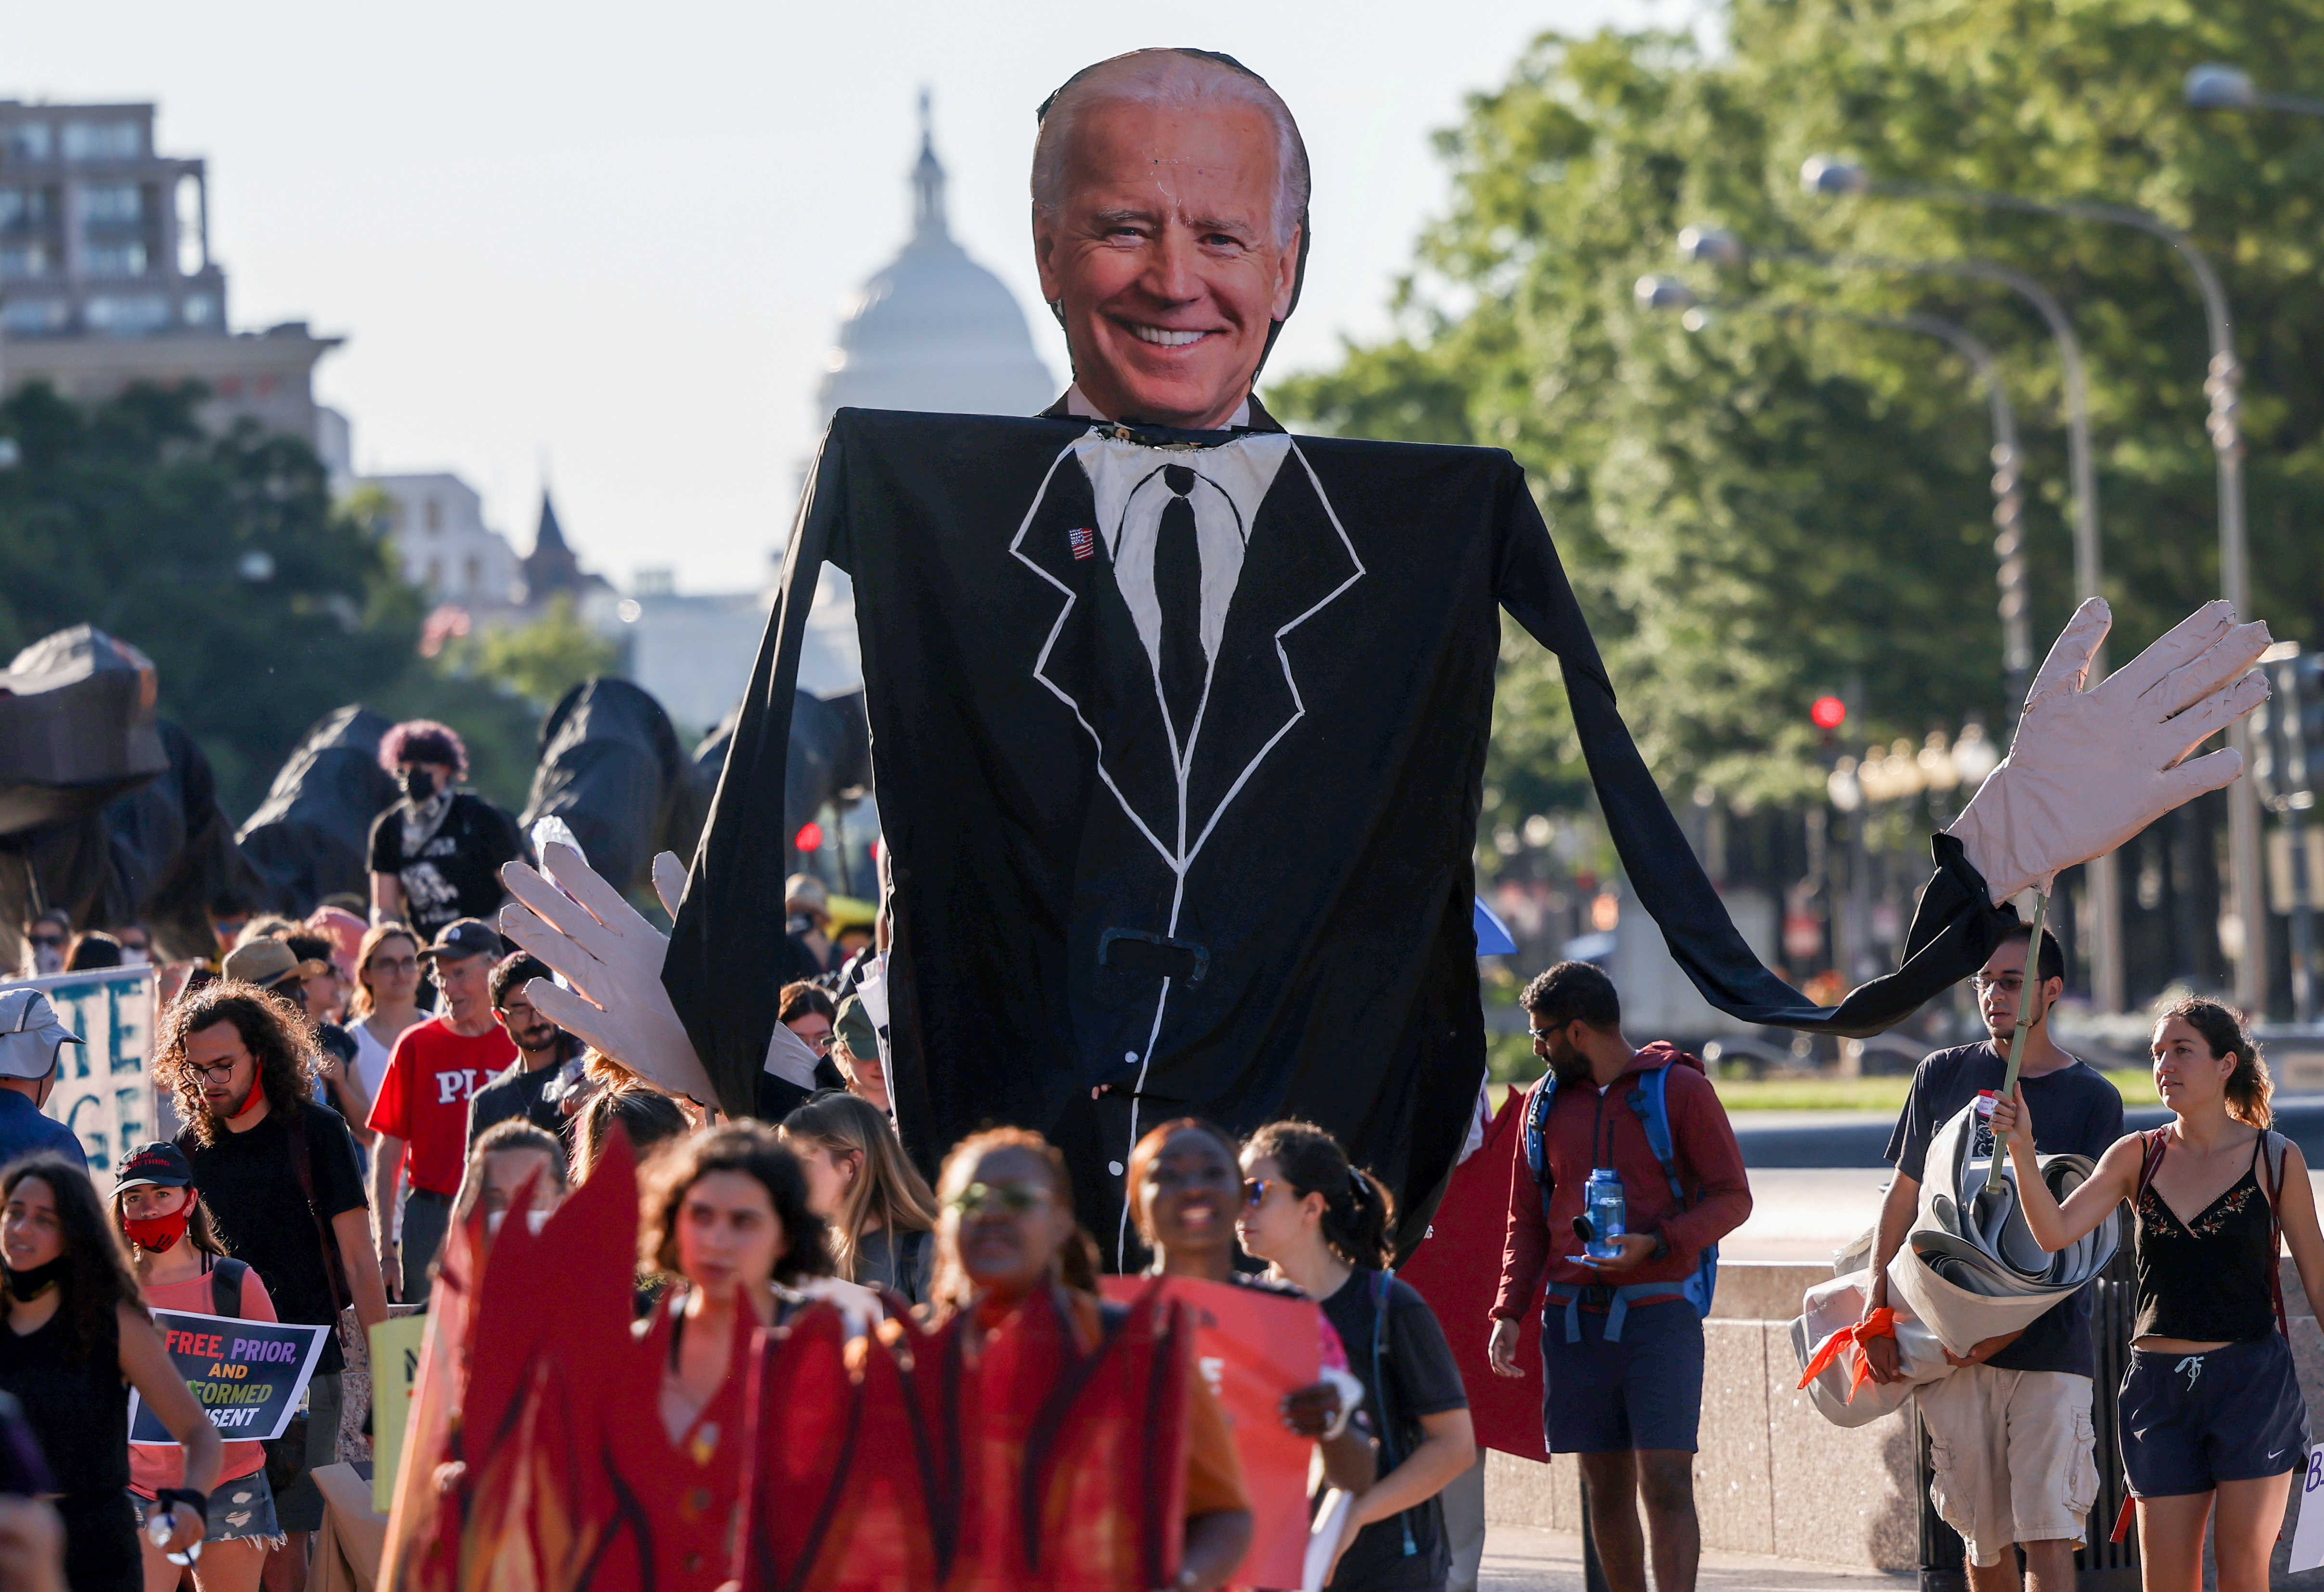 Environmental activists march towards the White House to demand U.S. President Joe Biden stop fossil fuel projects and put climate justice at the heart of his infrastructure plans, in Washington, U.S., June 30, 2021. REUTERS/Evelyn Hockstein